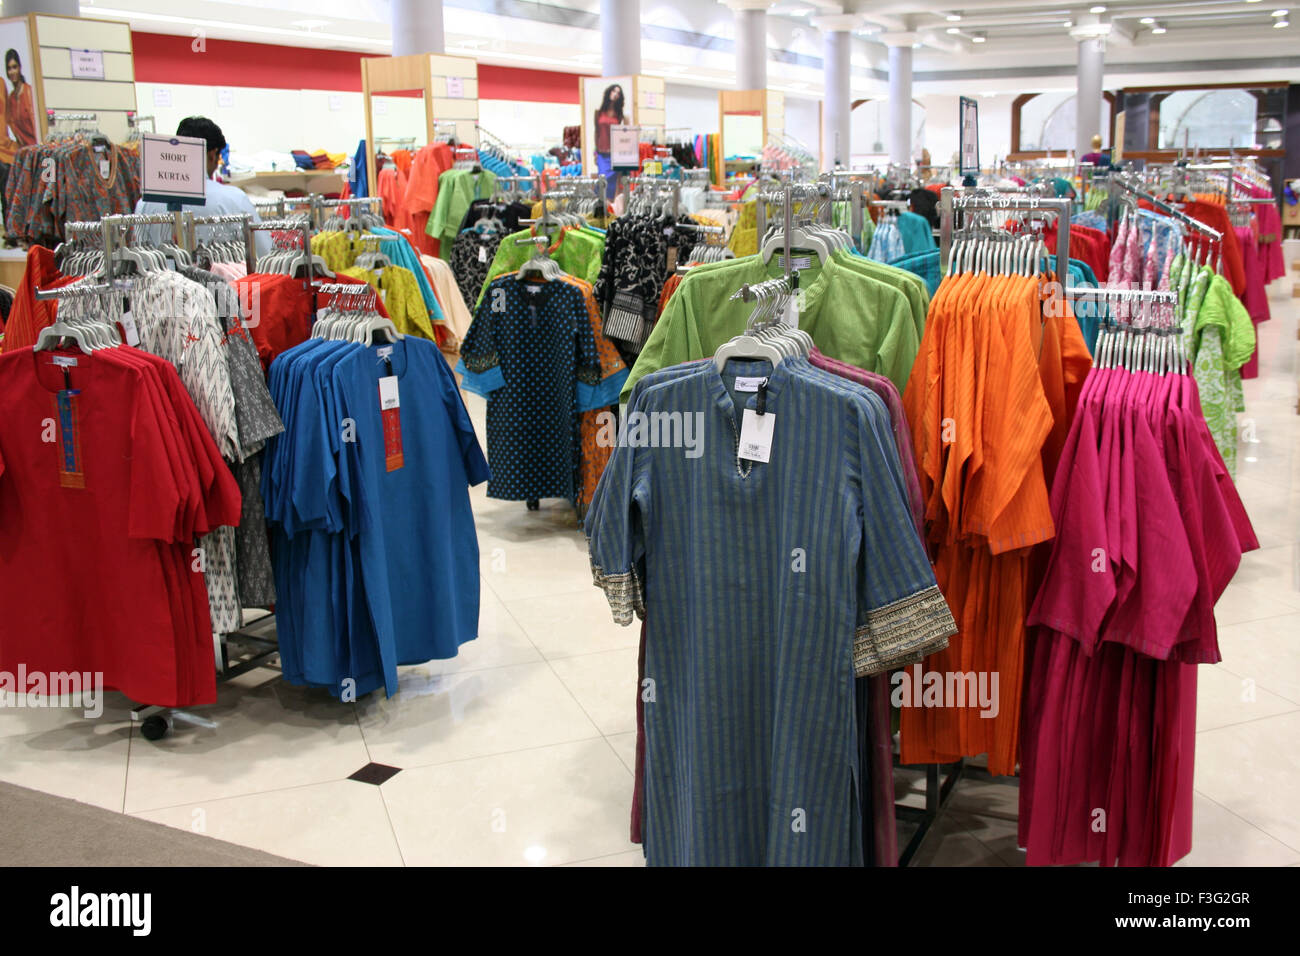 Westside readymade garments showroom ; Fort ; Bombay Mumbai ; Maharashtra ; India - Stock Image